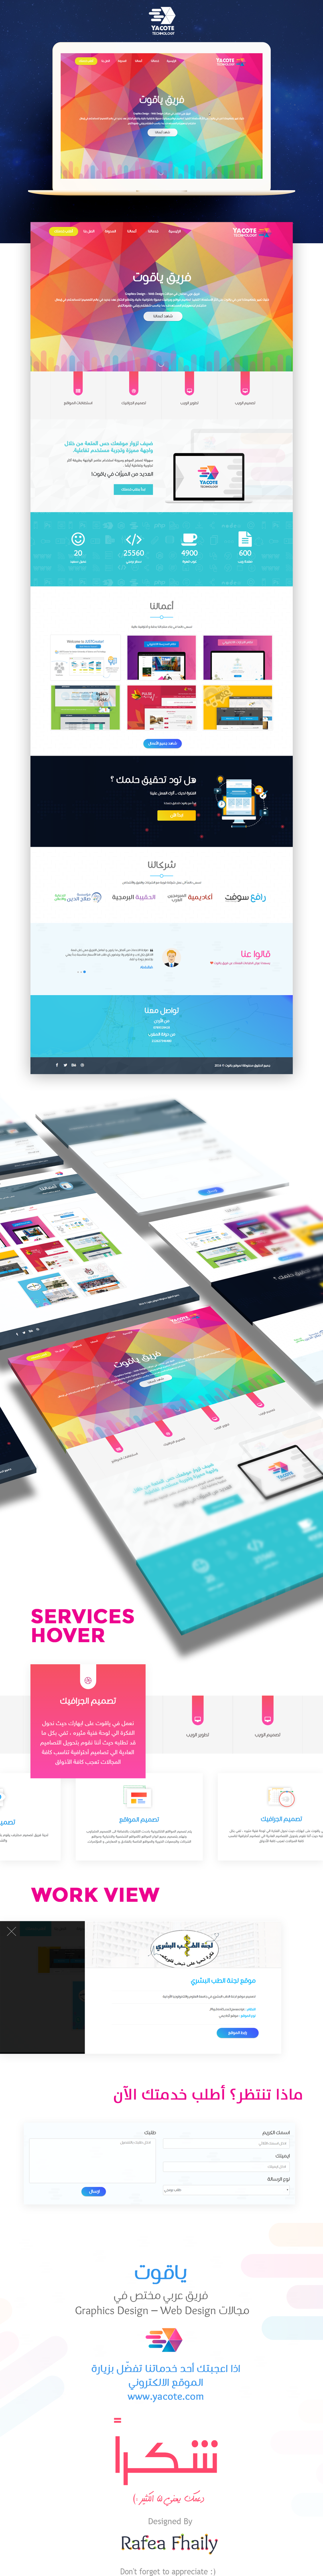 Yacote Technology Web Design UX/UI